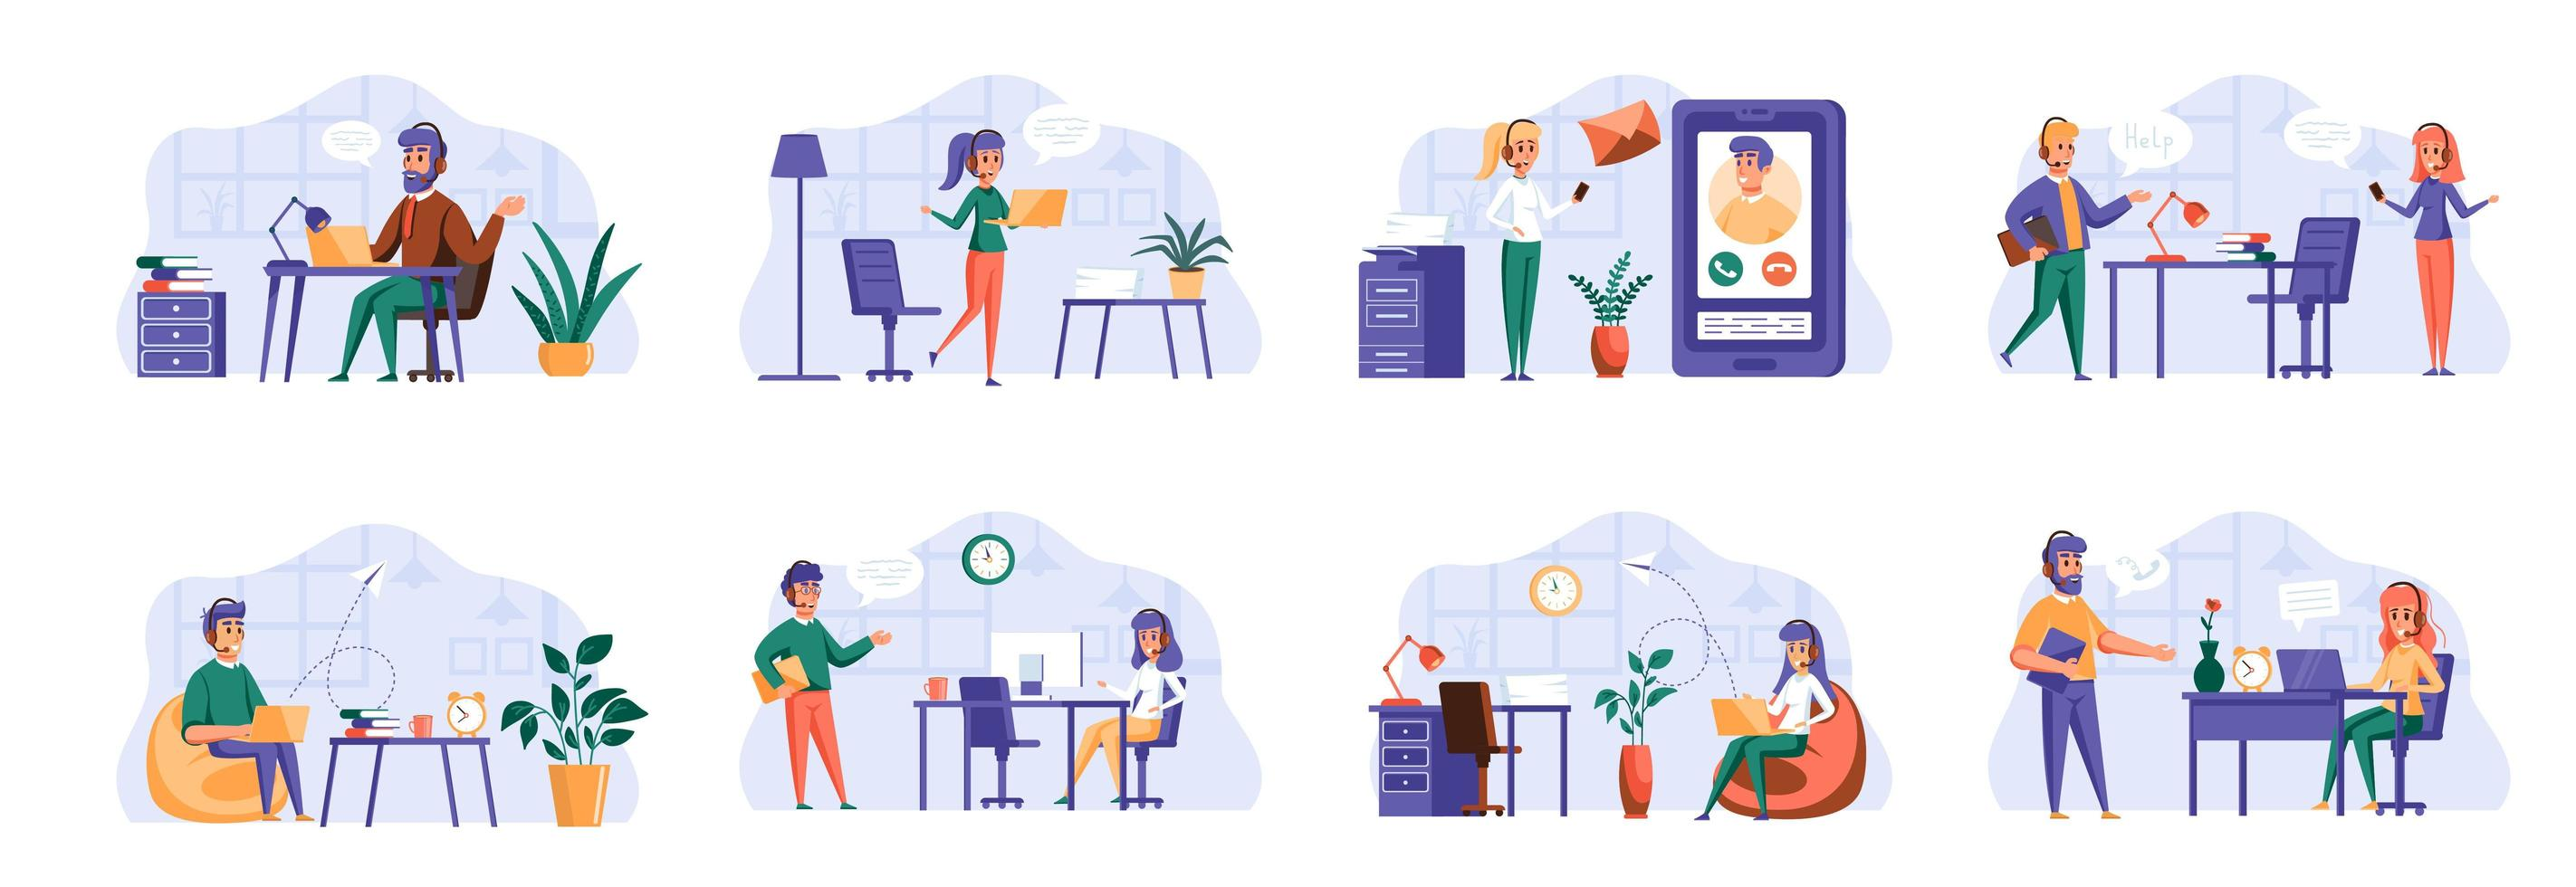 Support service scenes bundle with people characters. vector